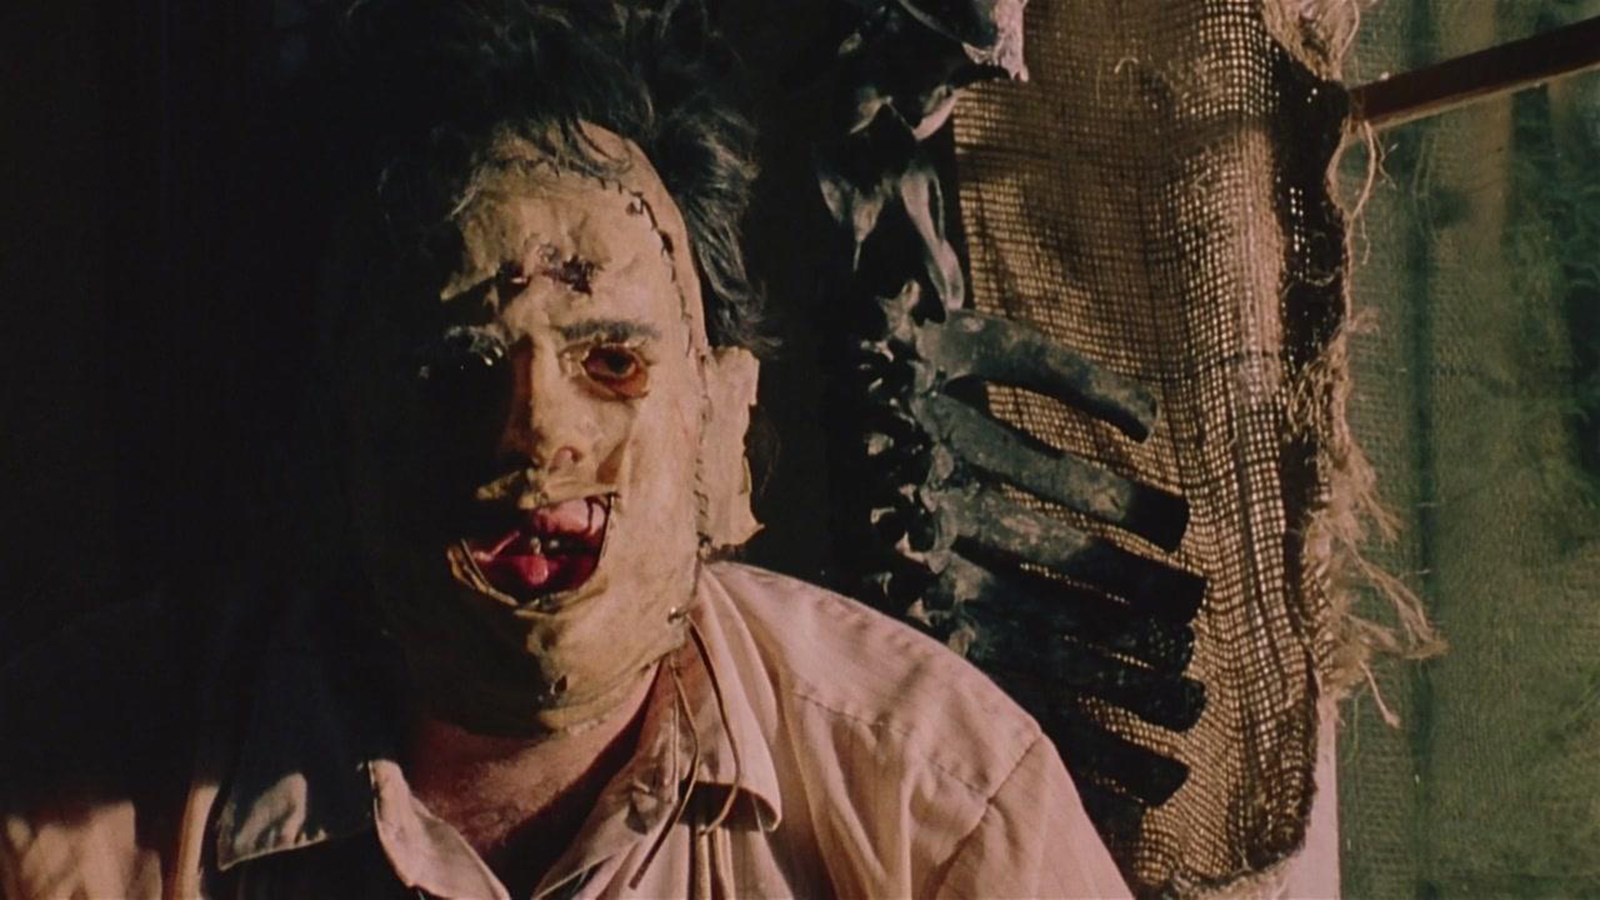 Gunnar Hansen leatherface